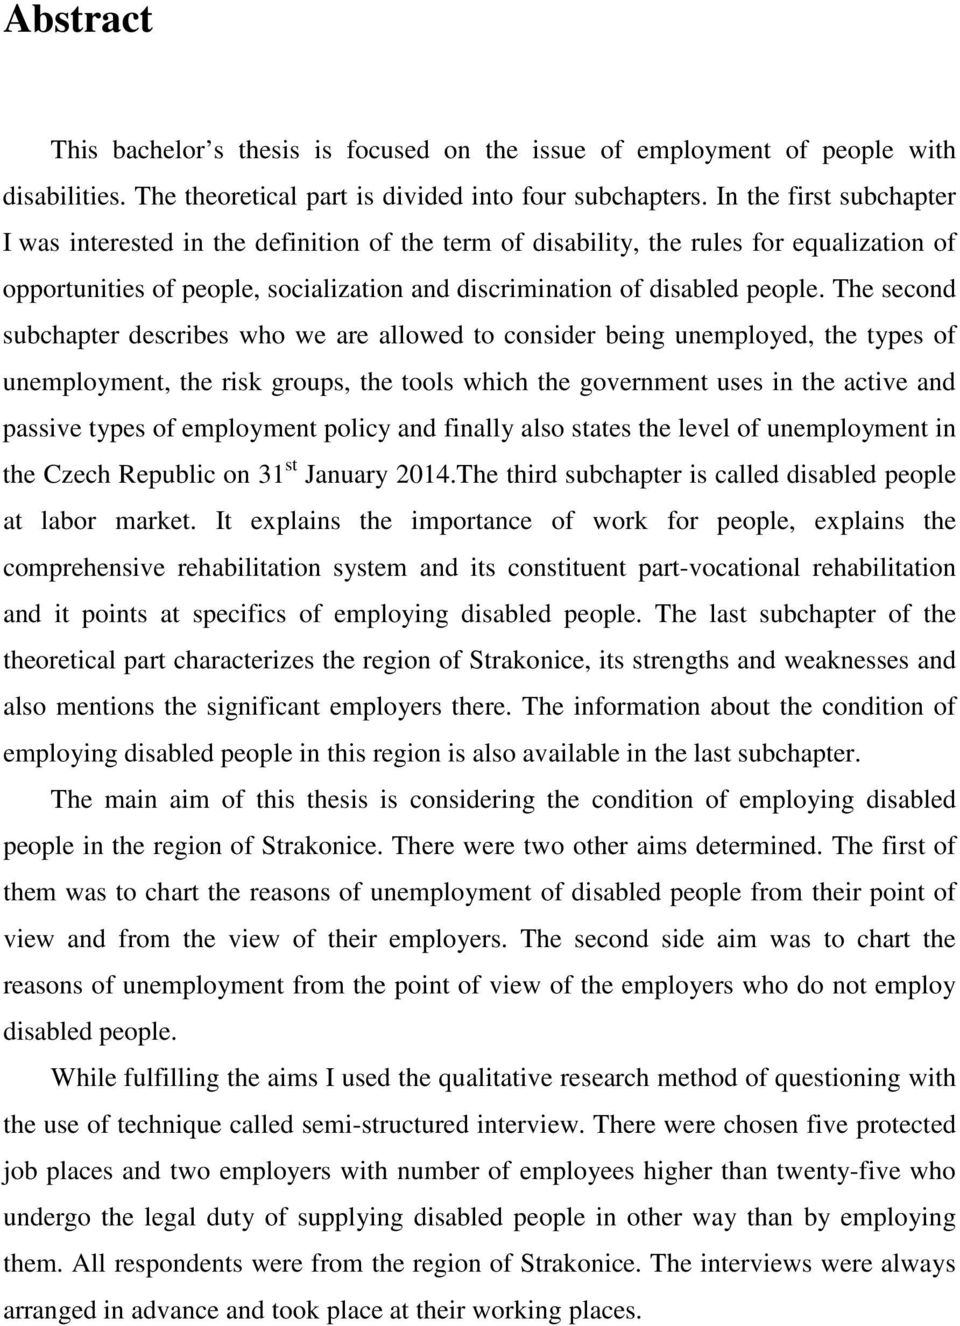 The second subchapter describes who we are allowed to consider being unemployed, the types of unemployment, the risk groups, the tools which the government uses in the active and passive types of